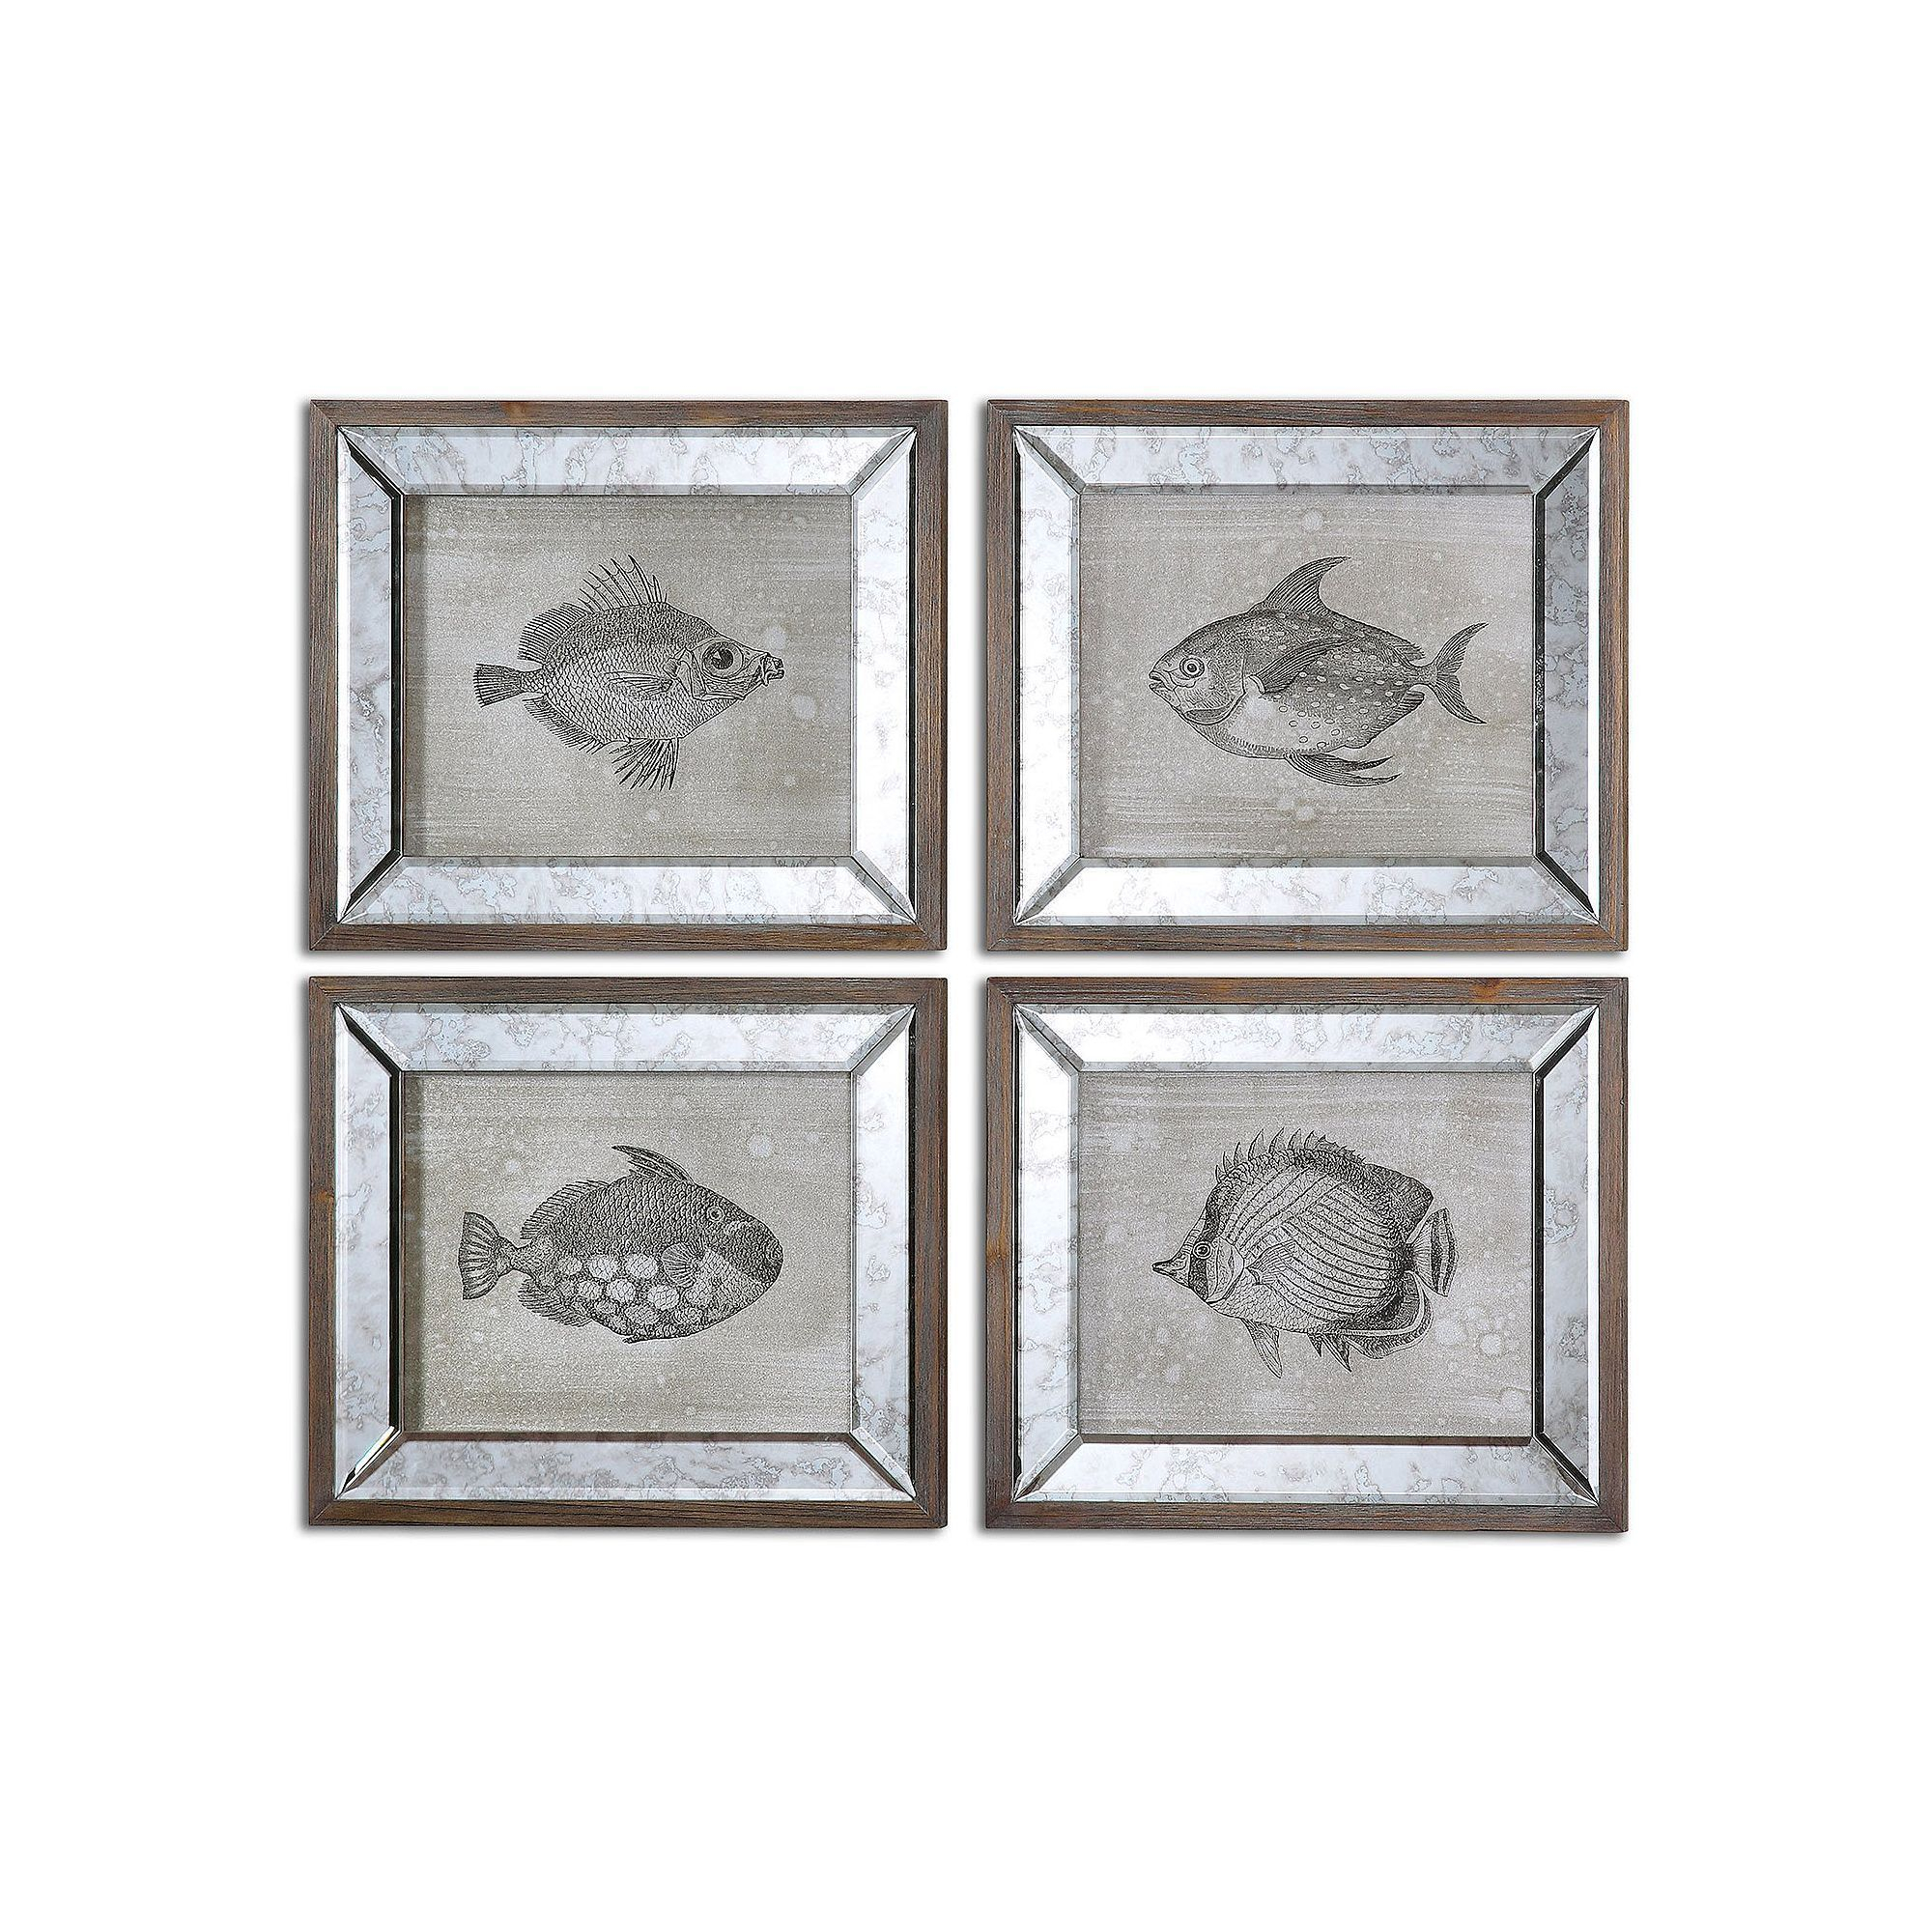 Favorite 4 Piece Metal Wall Decor Sets For Uttermost Mirrored Fish Wall Art 4 Piece Set In (View 5 of 20)